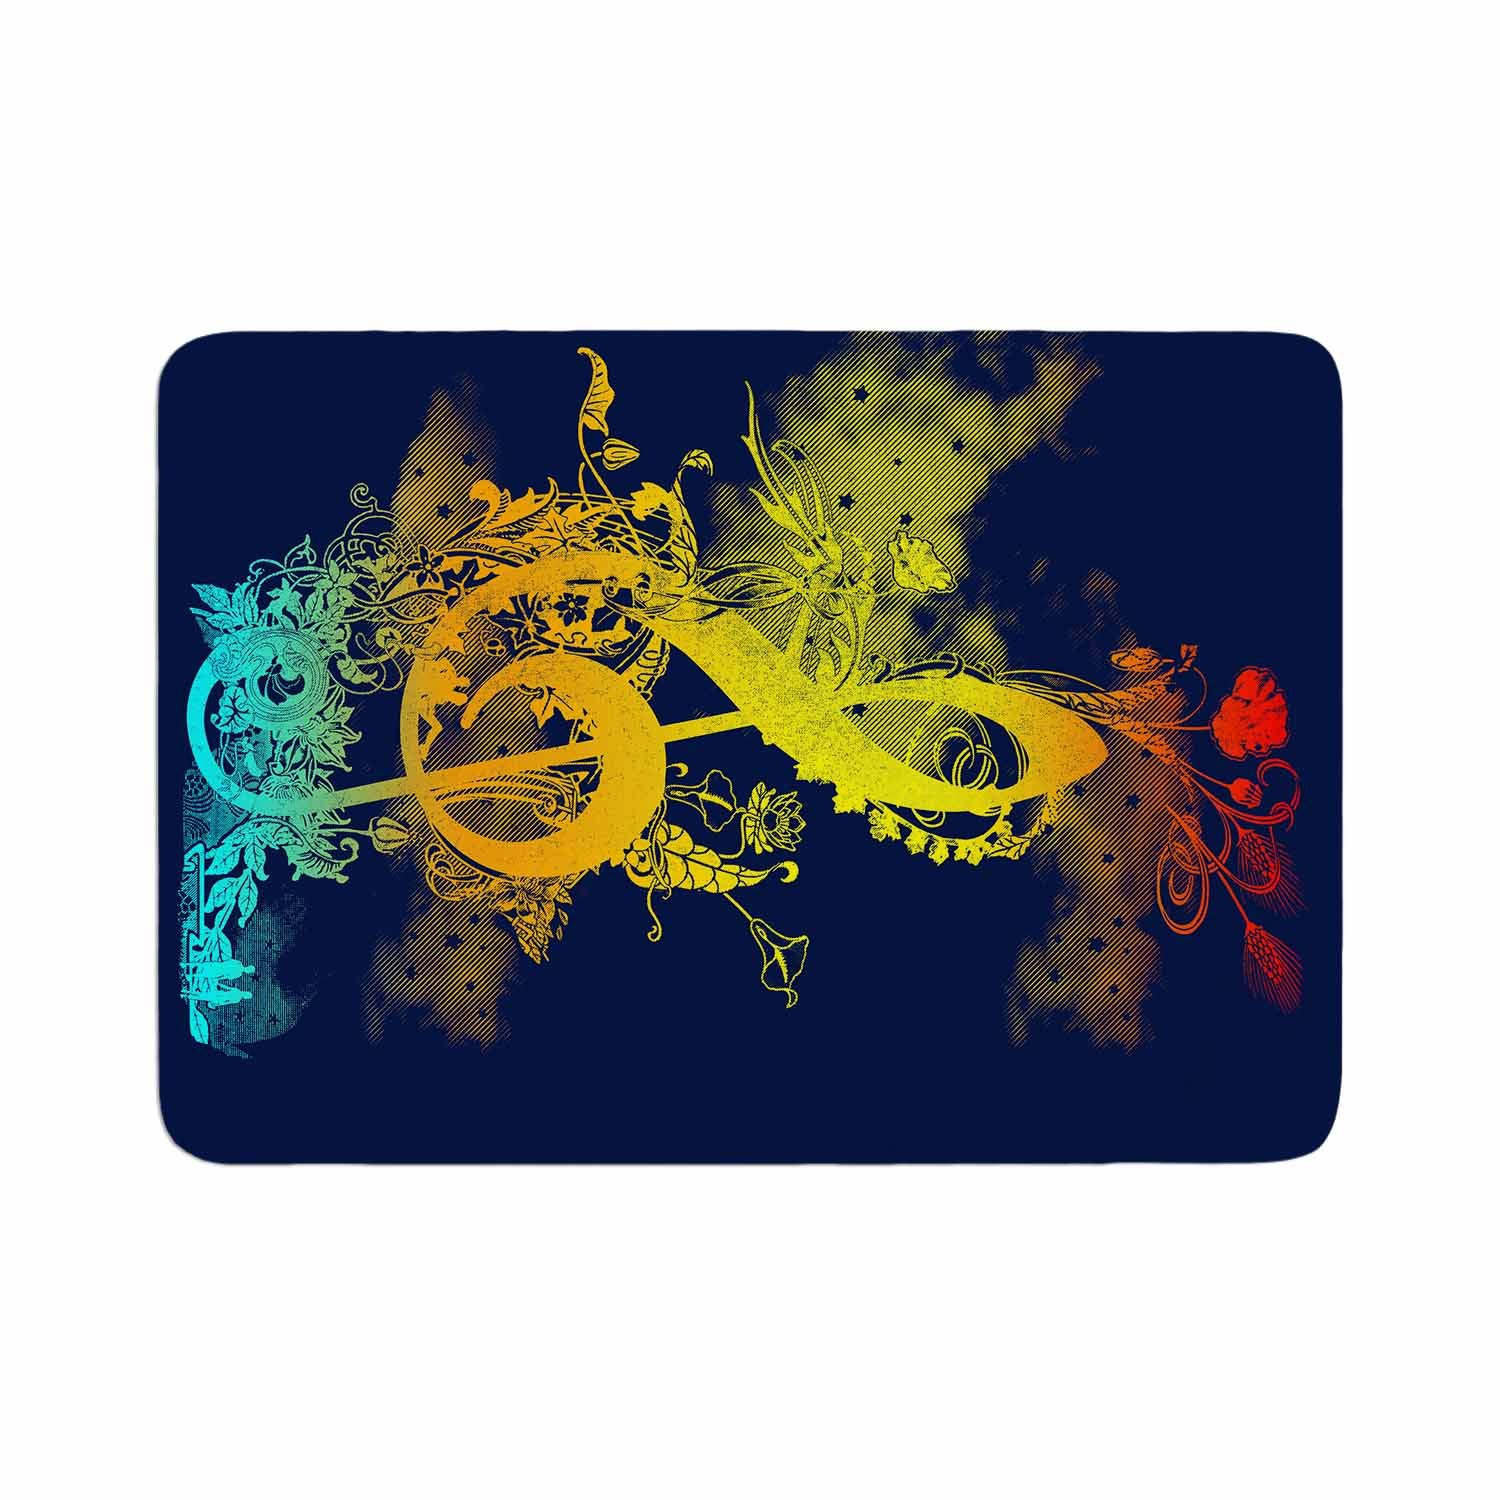 17 by 24 Kess InHouse Federic Levy-Hadida Sound of Nature Rainbow Music Memory Foam/ Bath Mat